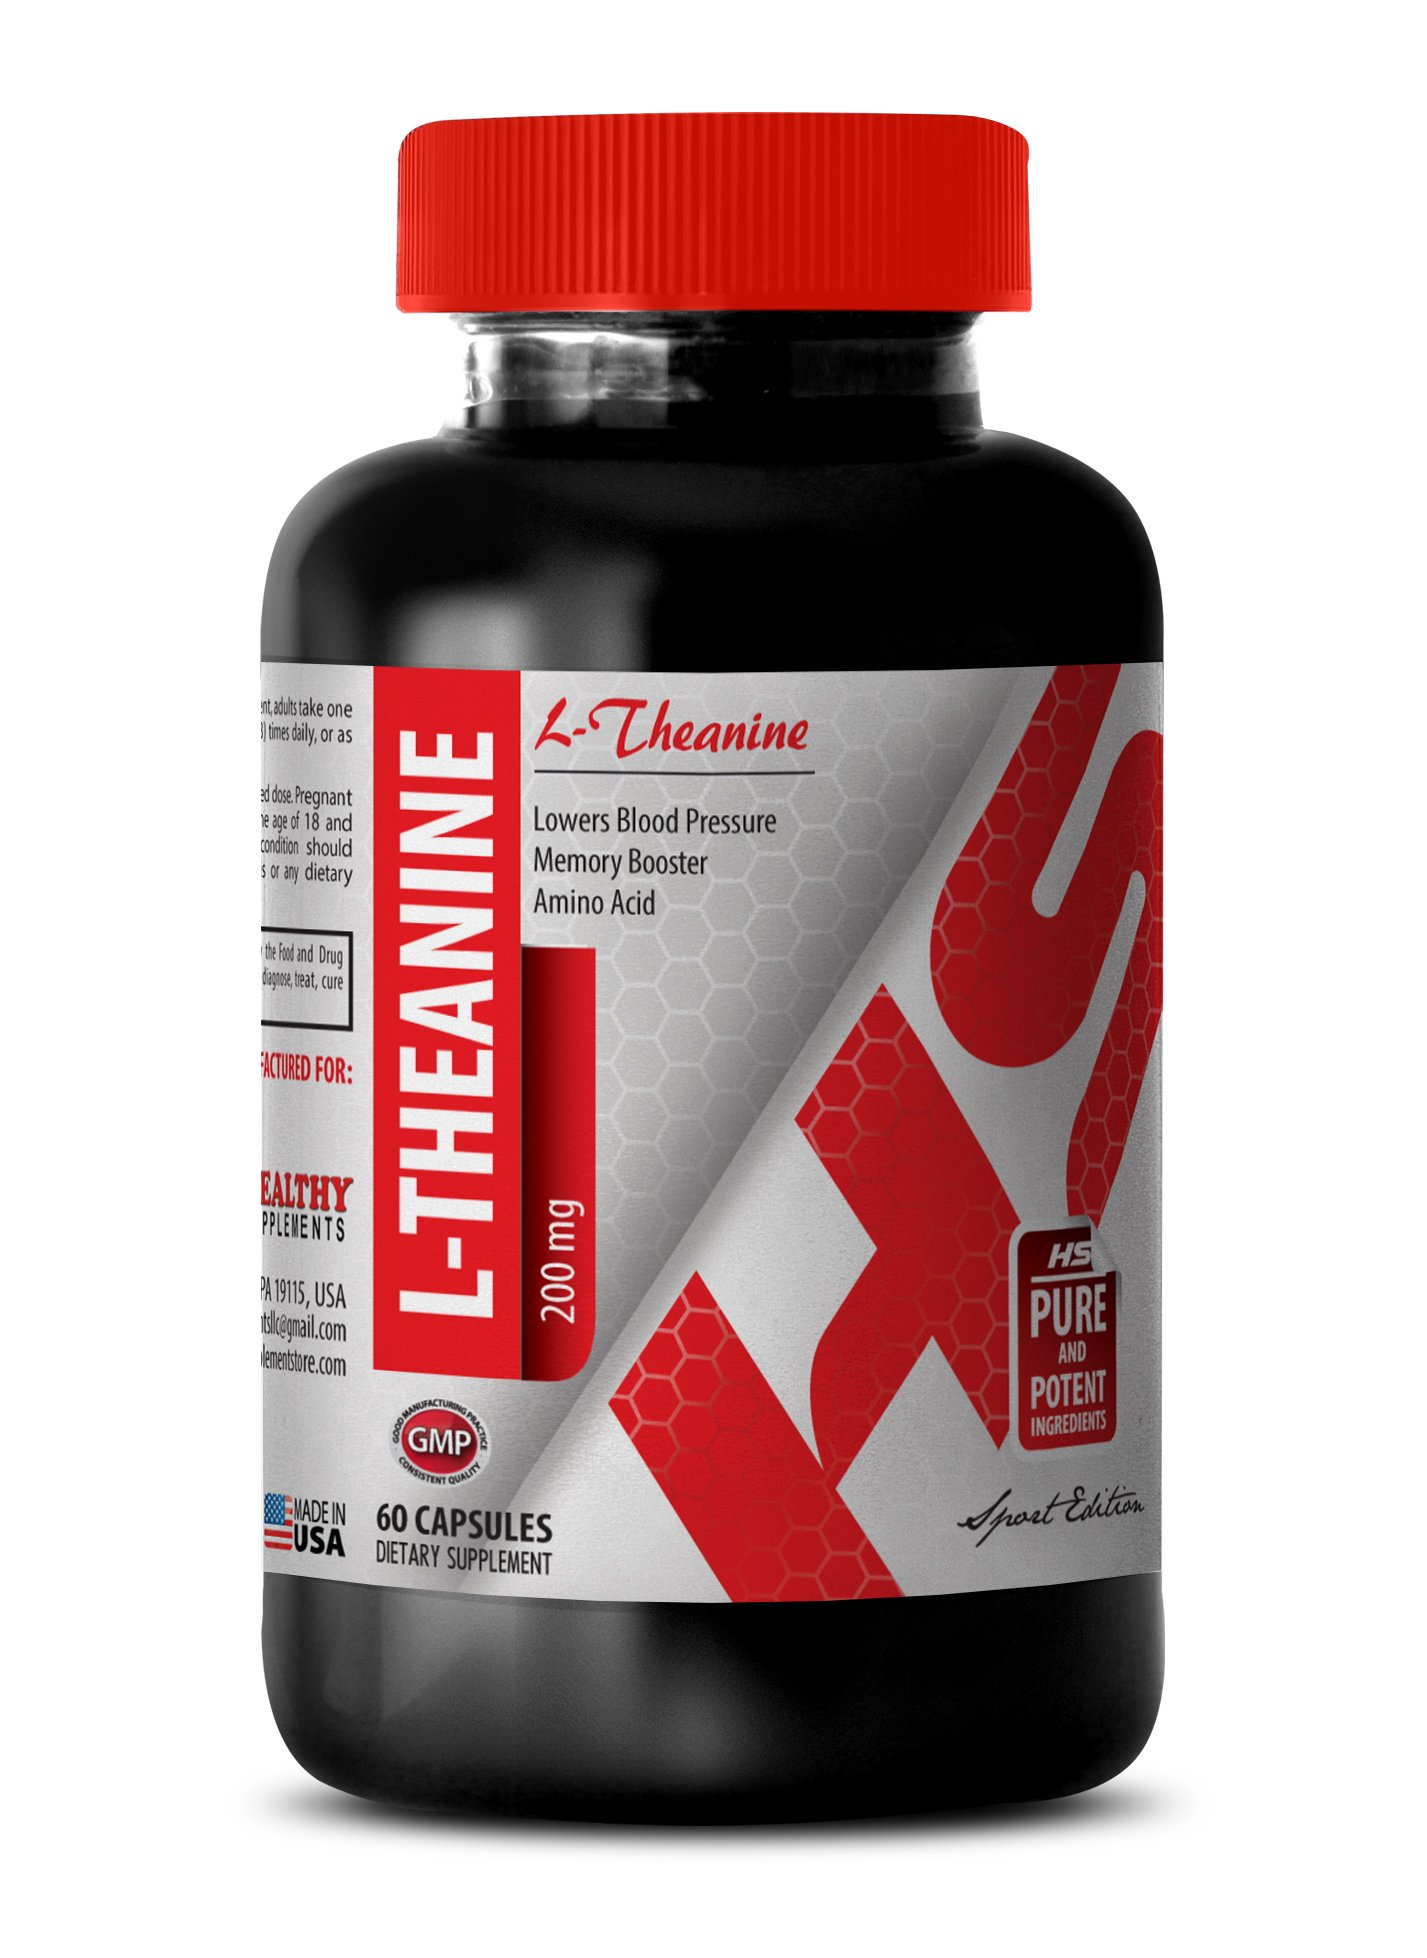 L-theanine man - NATURAL L-THEANINE 200MG - cope with anxiety (1 Bottle)